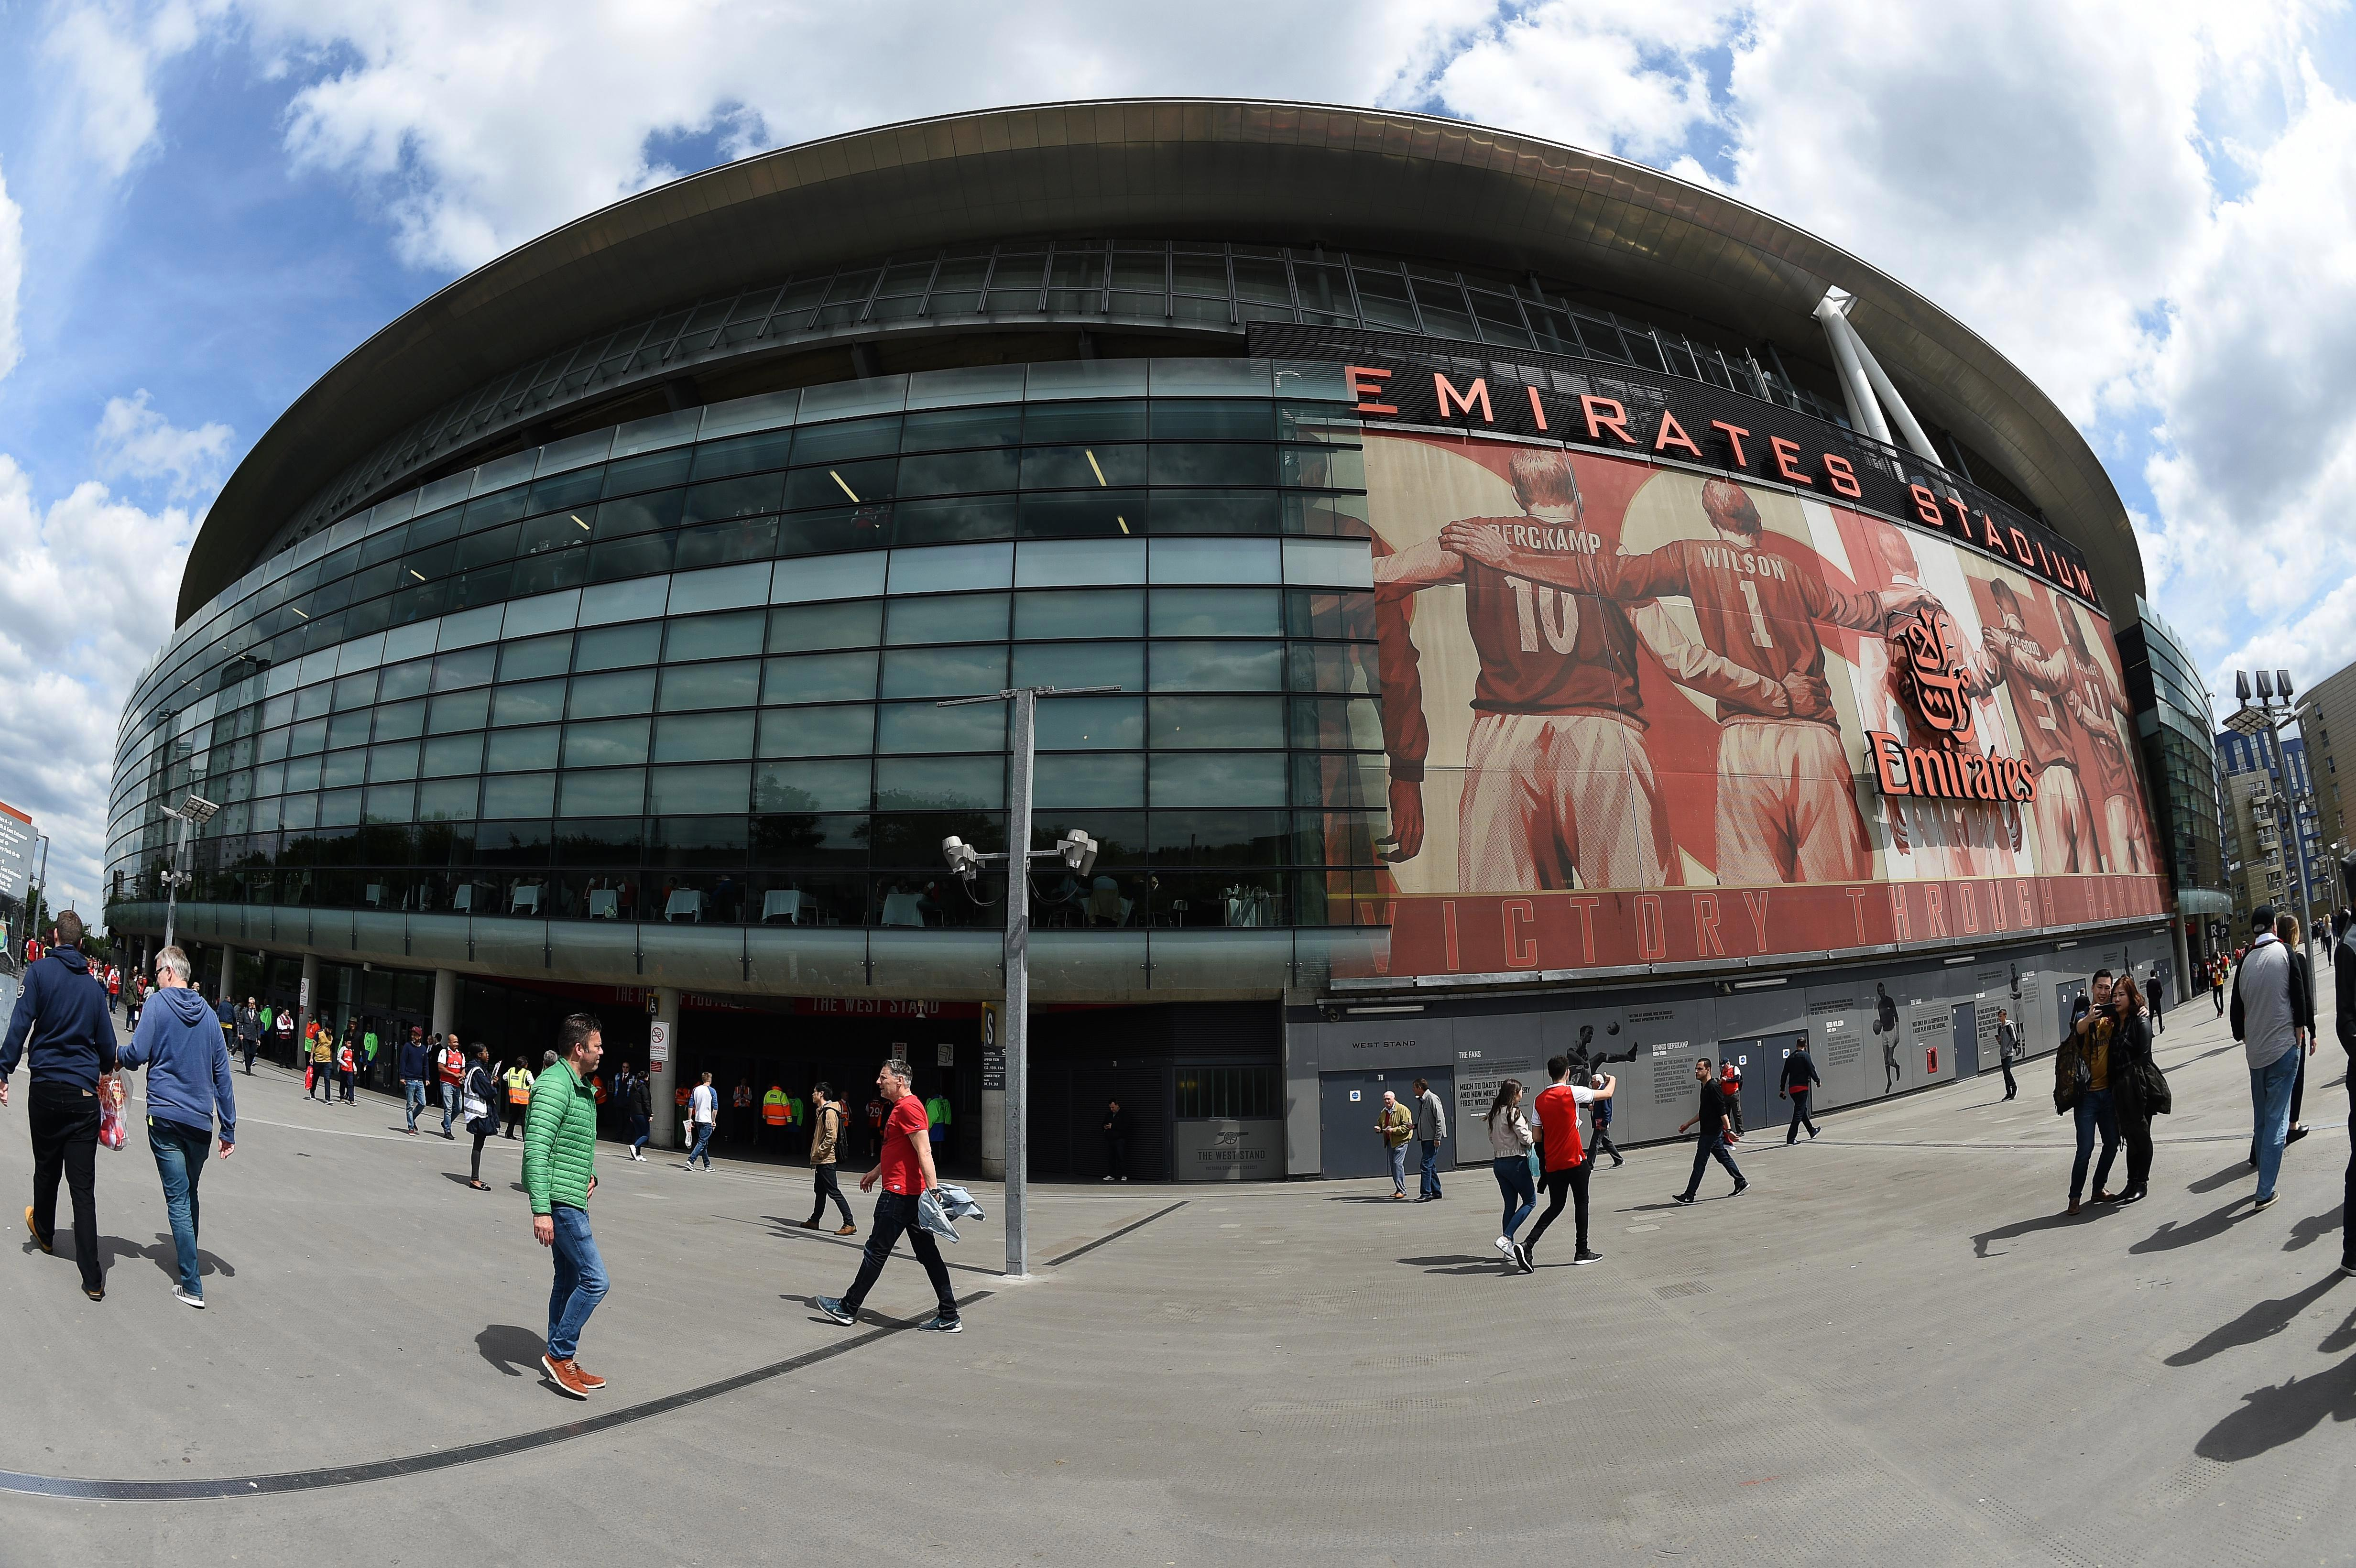 The Emirates Cup earnings this summer